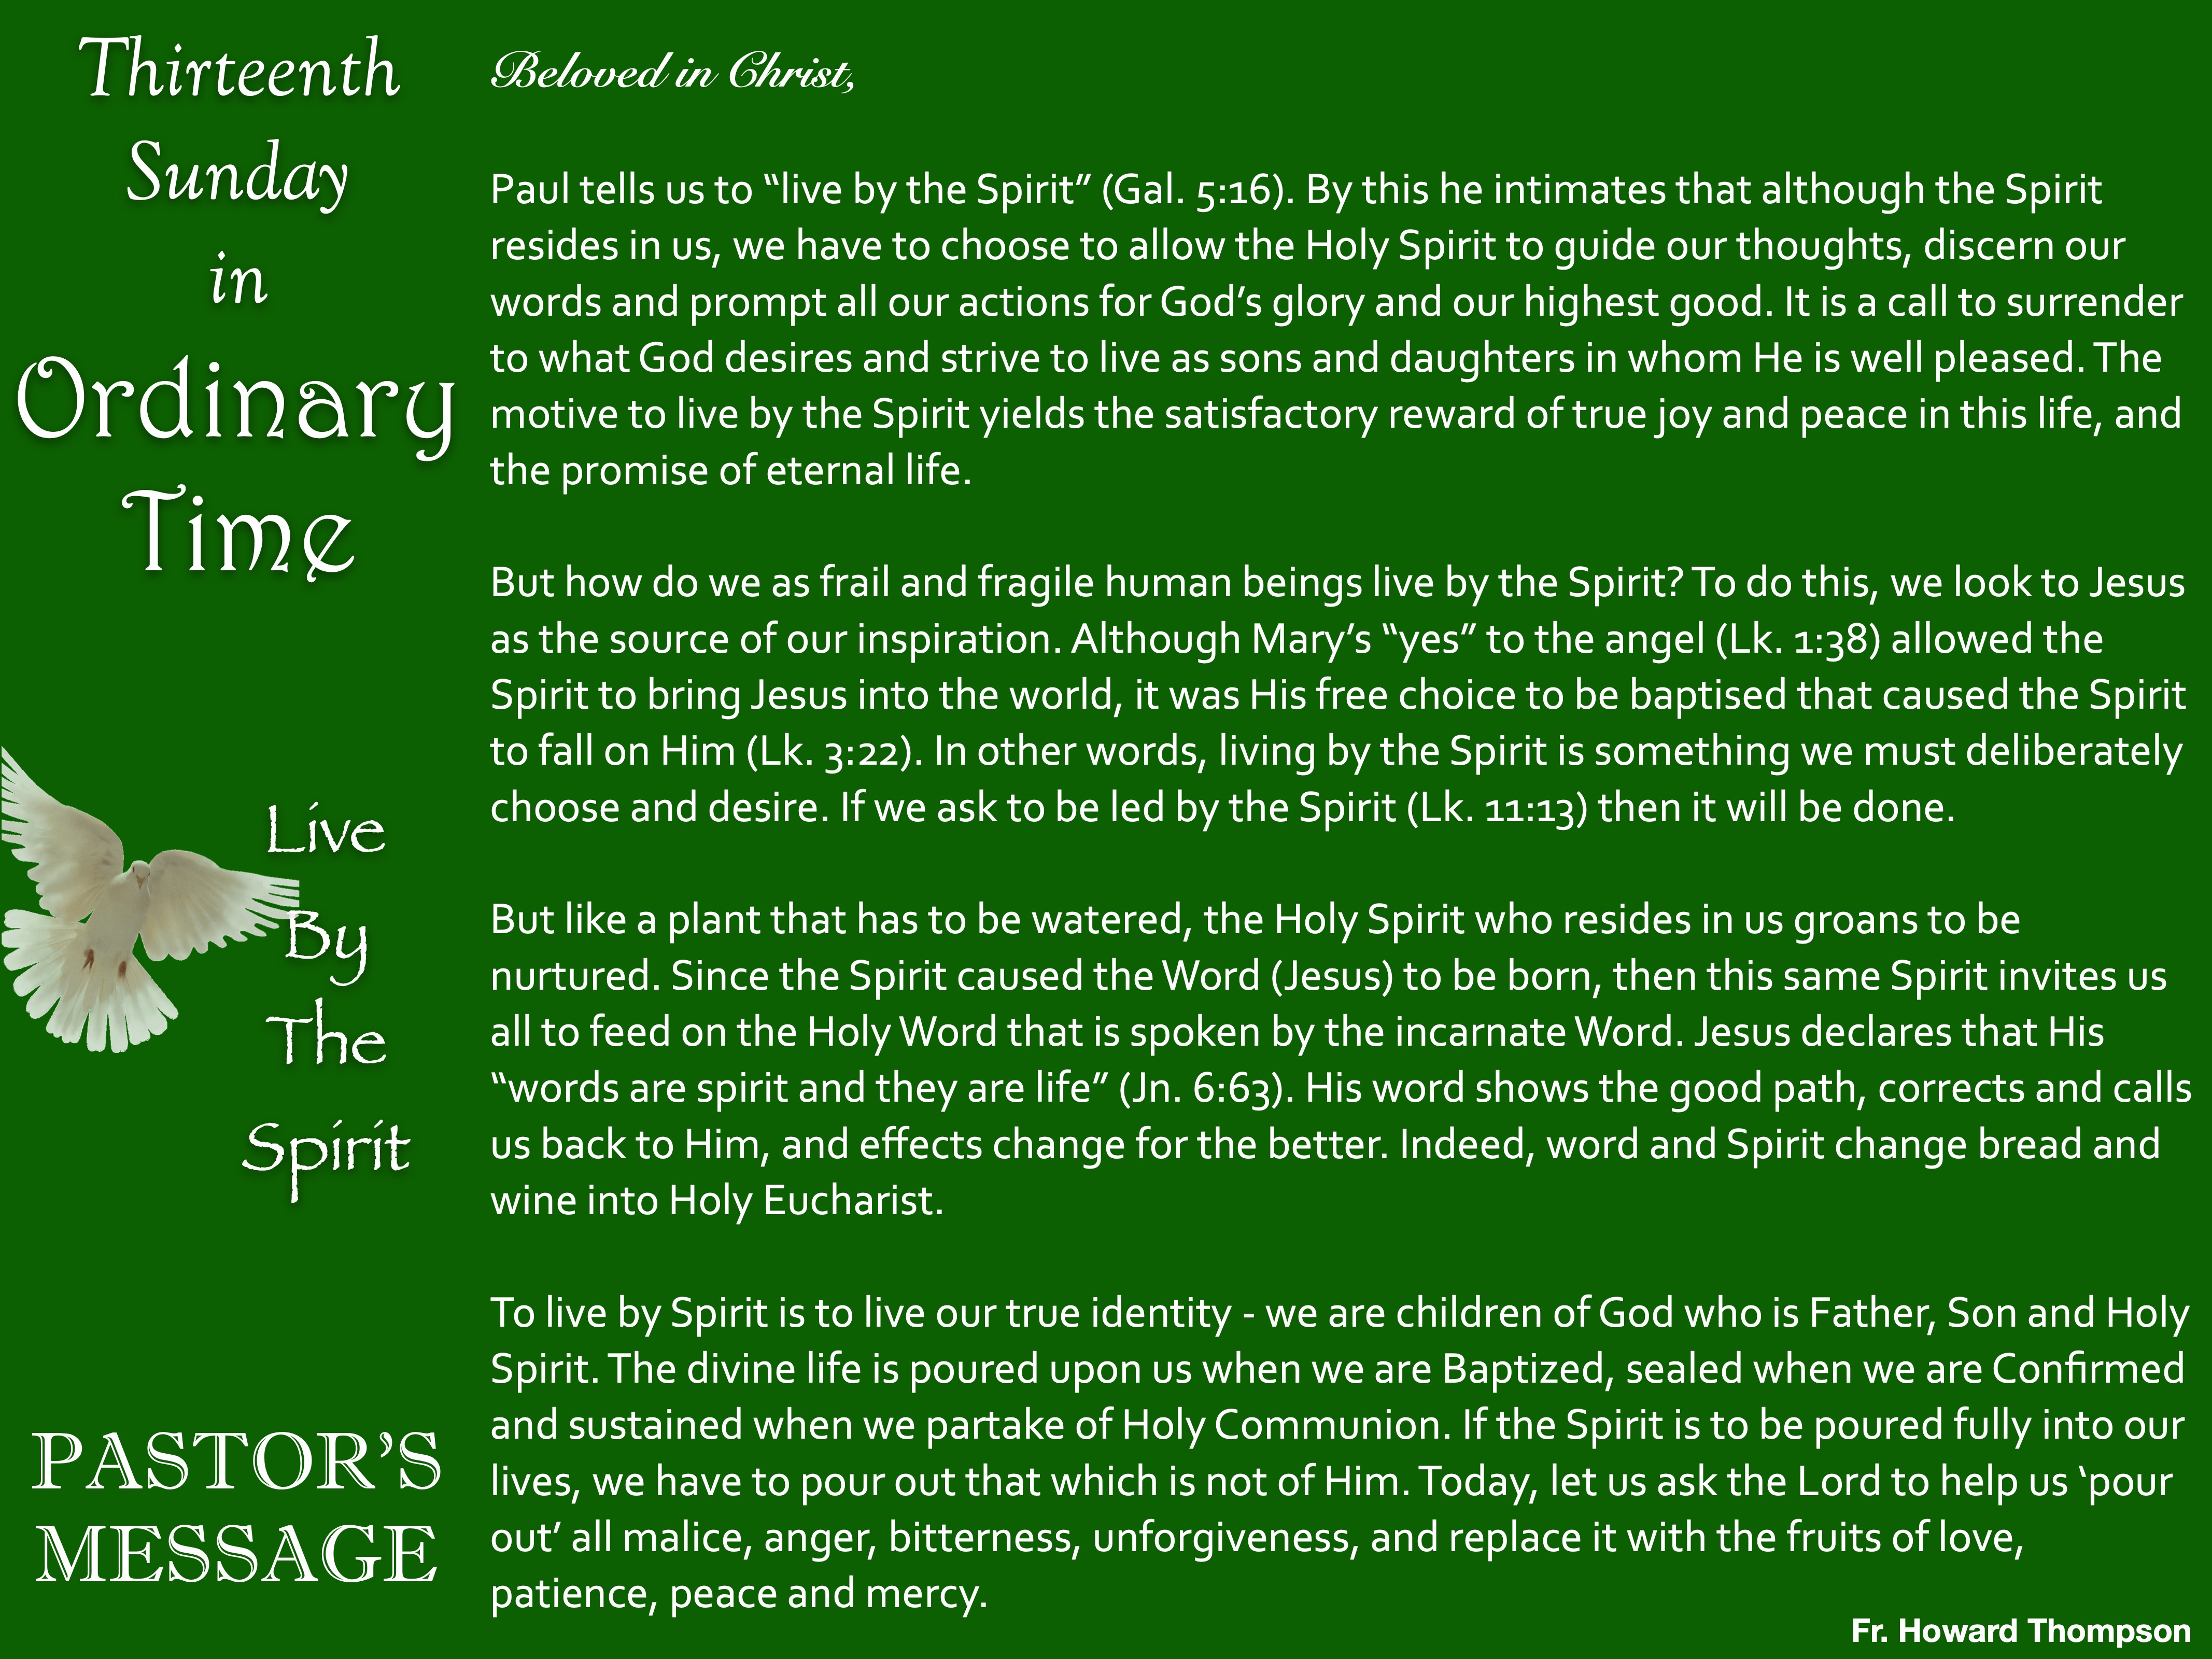 Pastor's Message - 70 Thirteenth Sunday